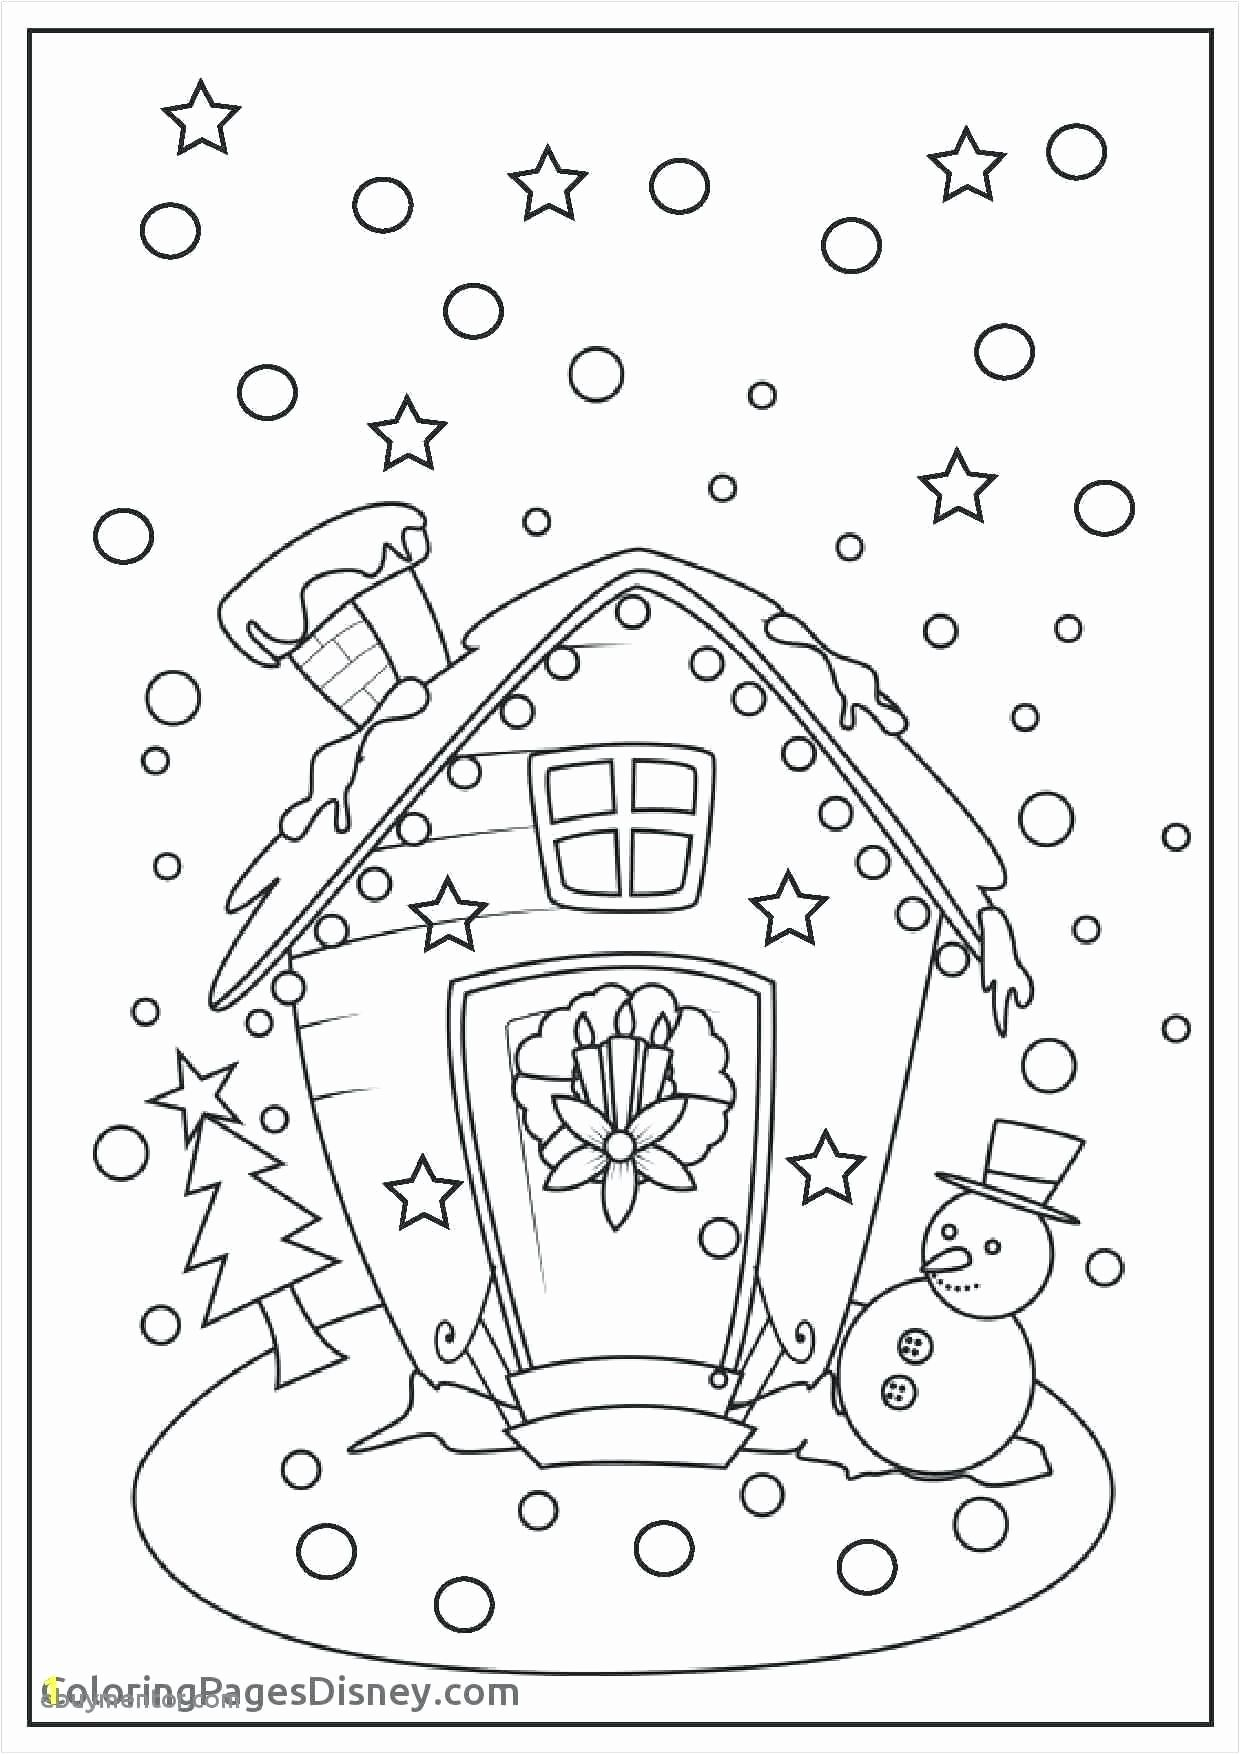 Crayola Make Your Own Coloring Pages Lovely Coloring Book Splendi Cr Printable Christmas Coloring Pages Free Christmas Coloring Pages Christmas Coloring Sheets